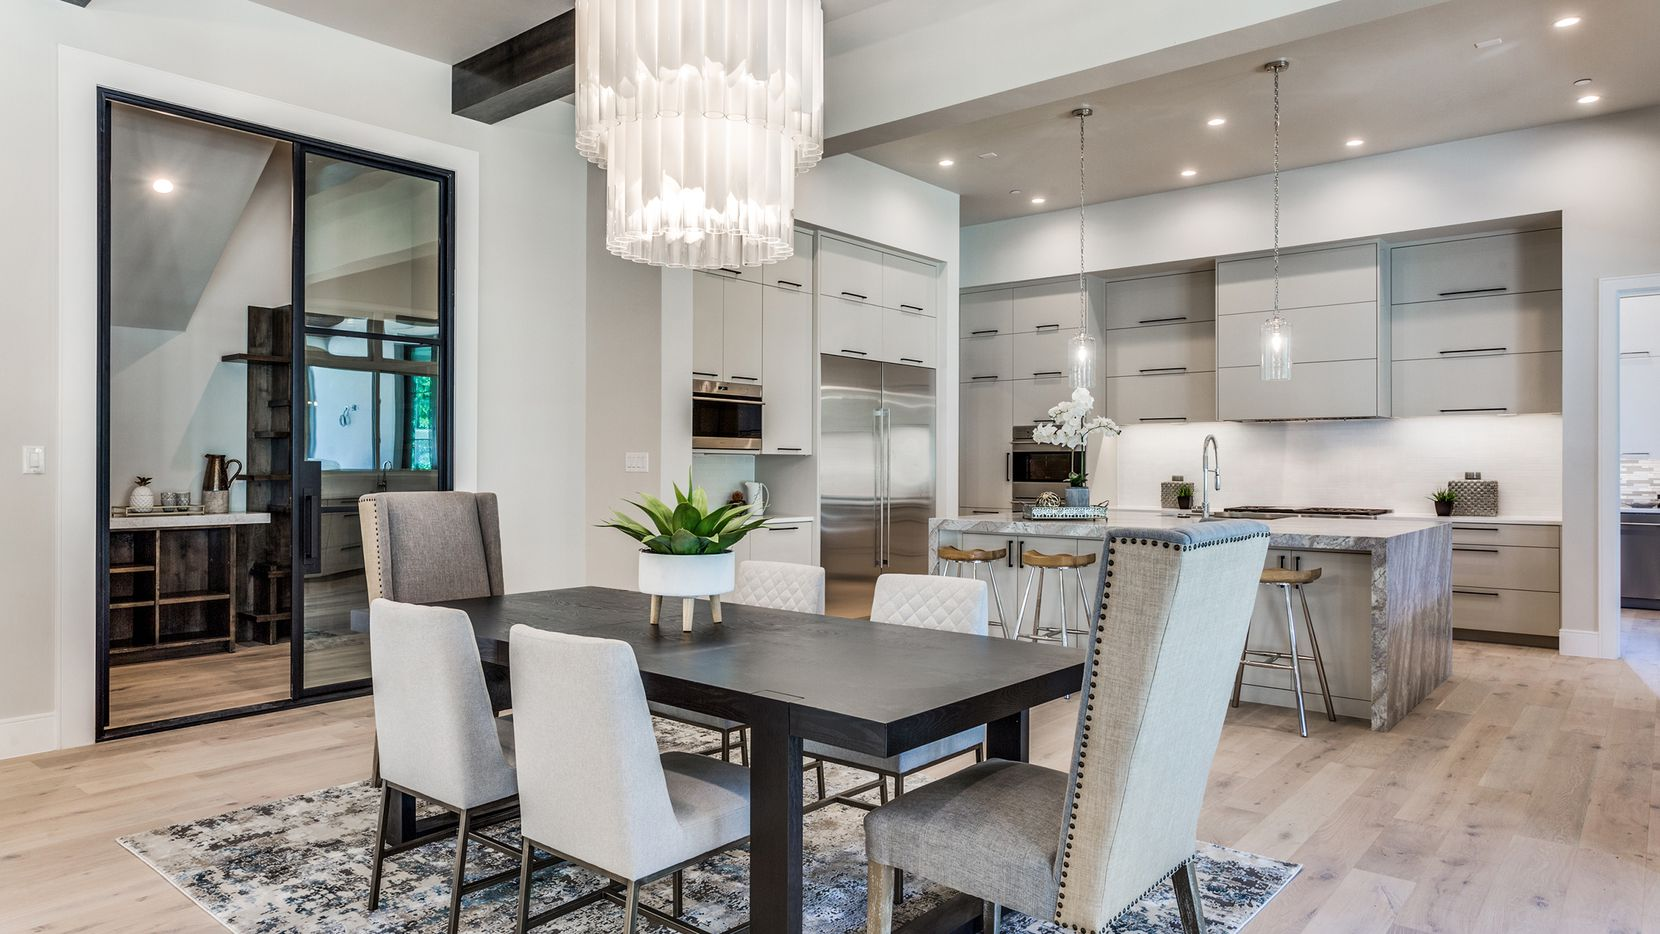 Inventories of homes are low and buyers are plentiful, so now's a great time to sell your home, according to the luxury experts at Allie Beth Allman & Associates.